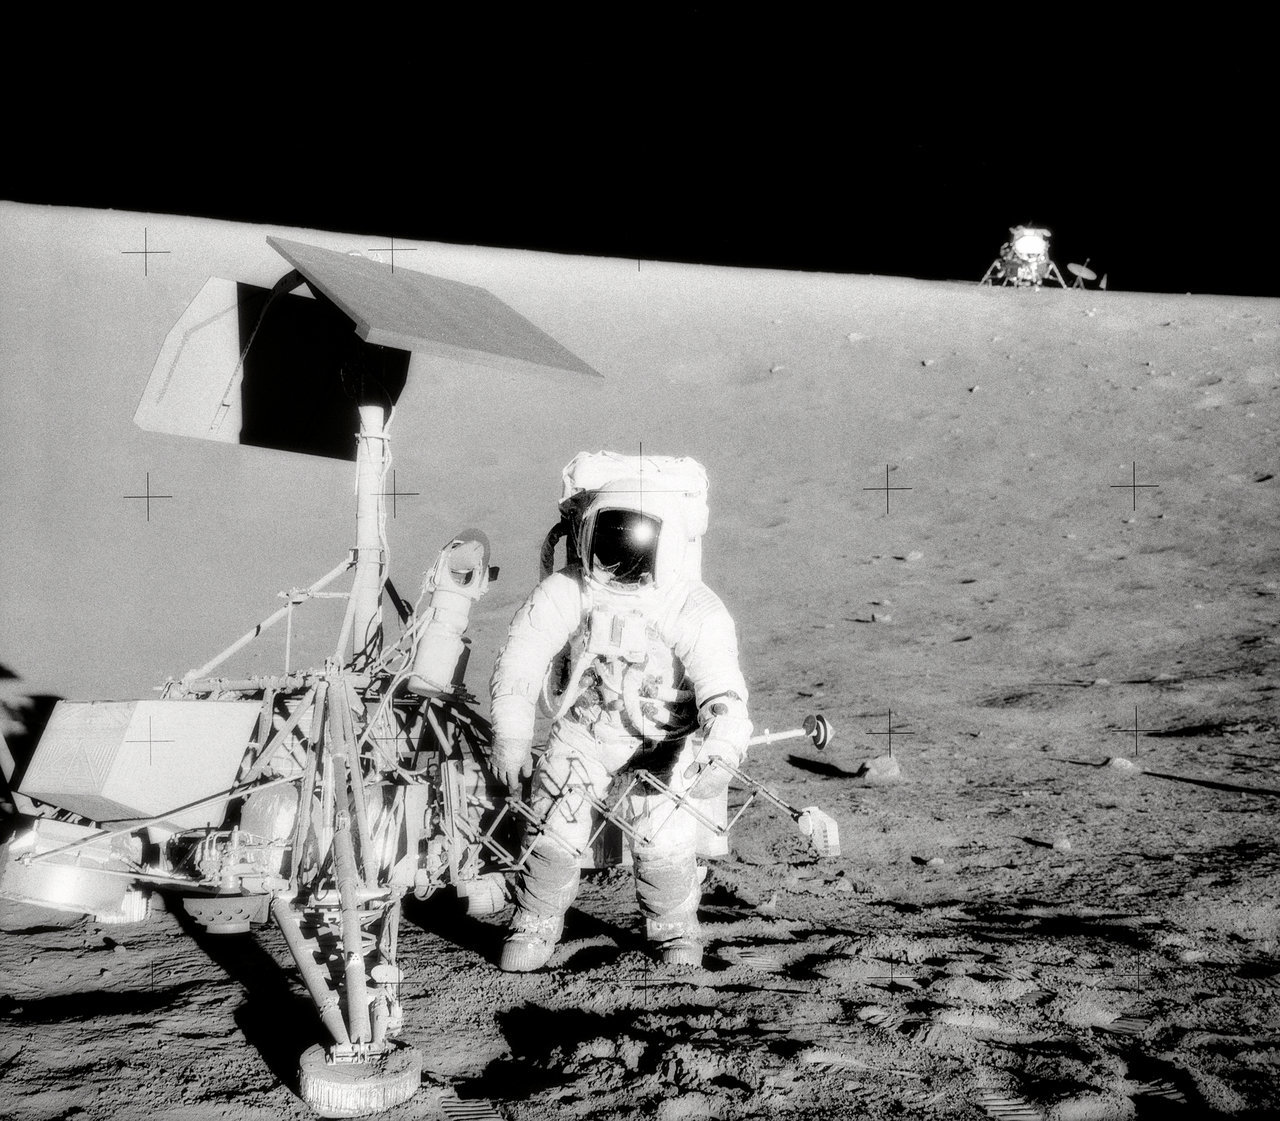 Astronaut and robotic spacecraft on the Moon.